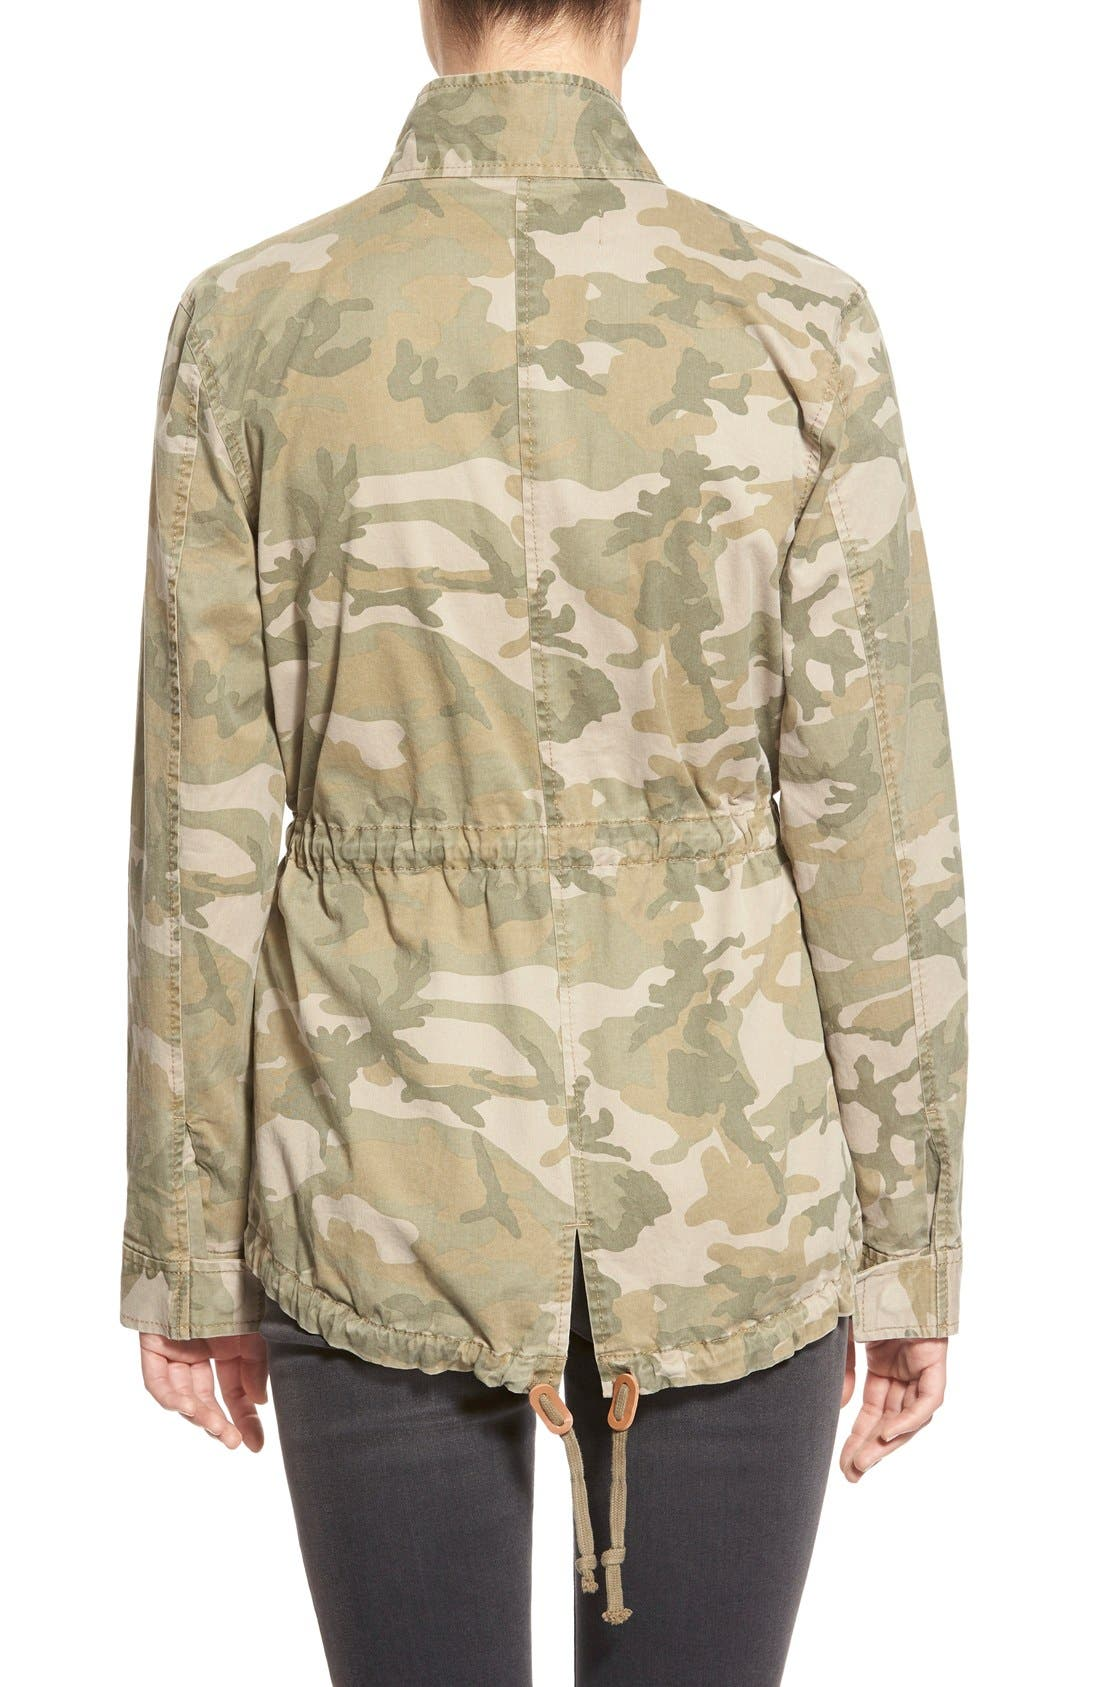 Treasure&Bond Camo Print Field Jacket,                             Alternate thumbnail 3, color,                             300